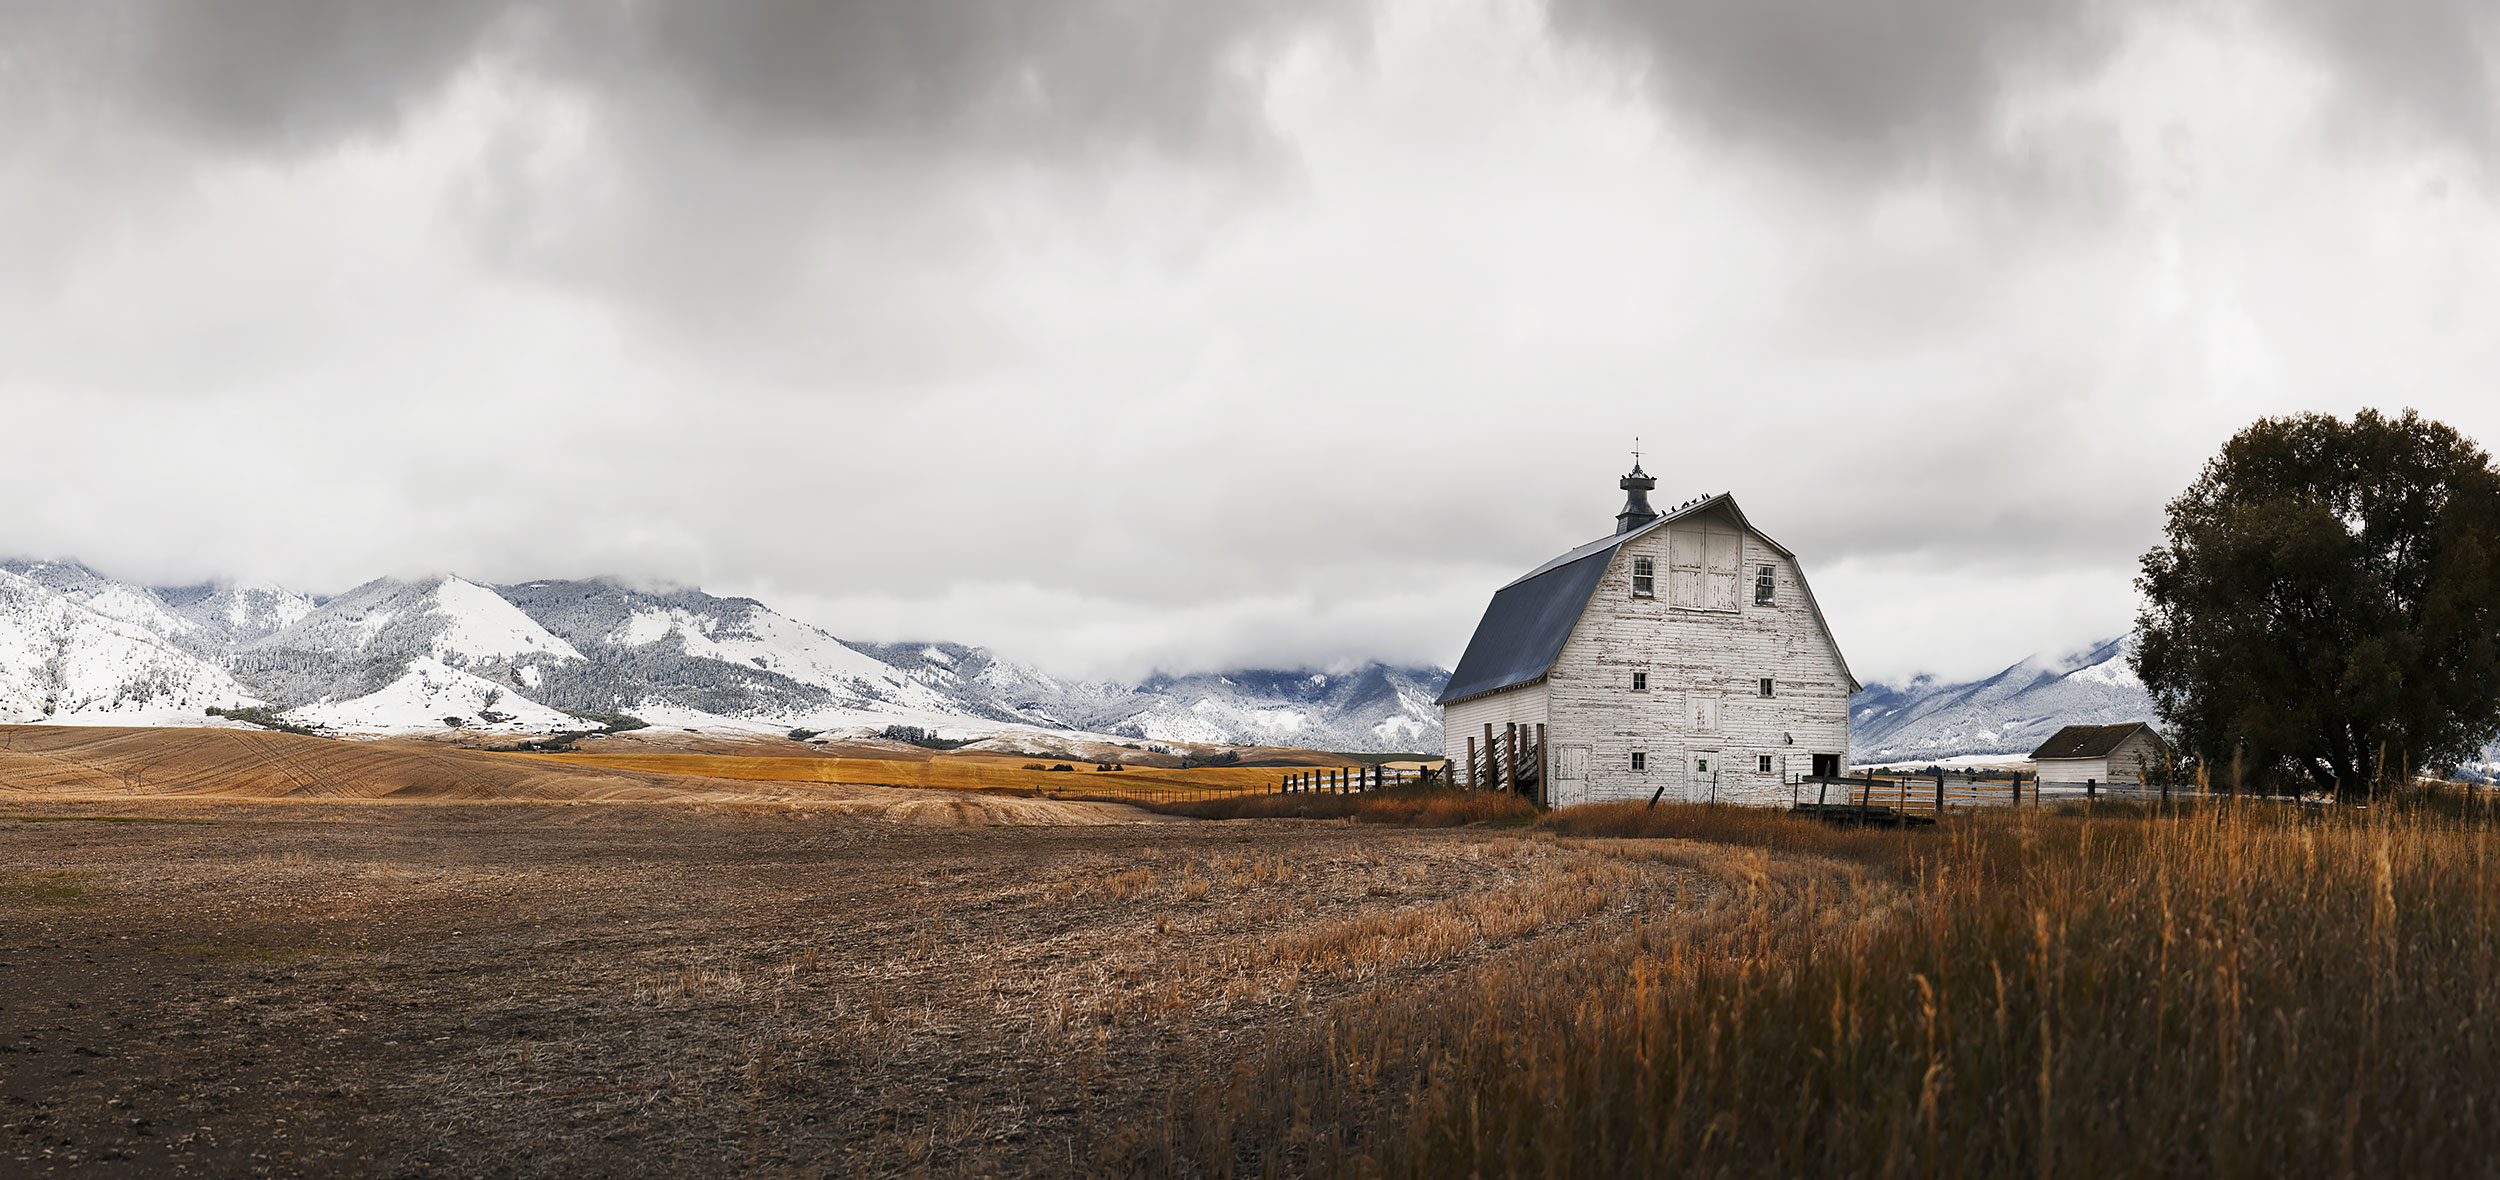 Classic white barn in the Gallatin Valley near Bozeman, Montana